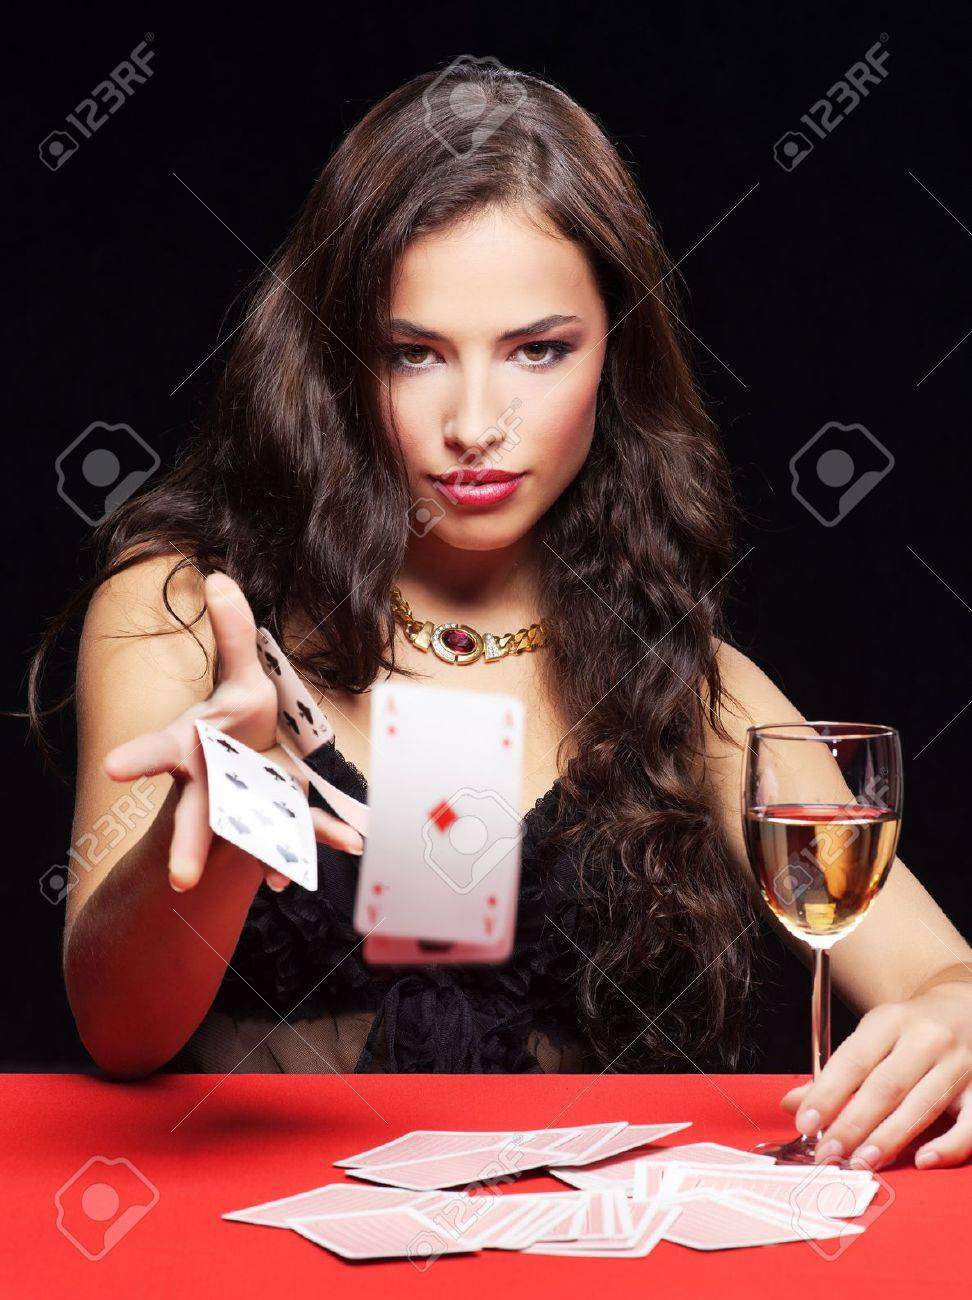 pretty young woman gambling on red table Stock Photo - 14100002